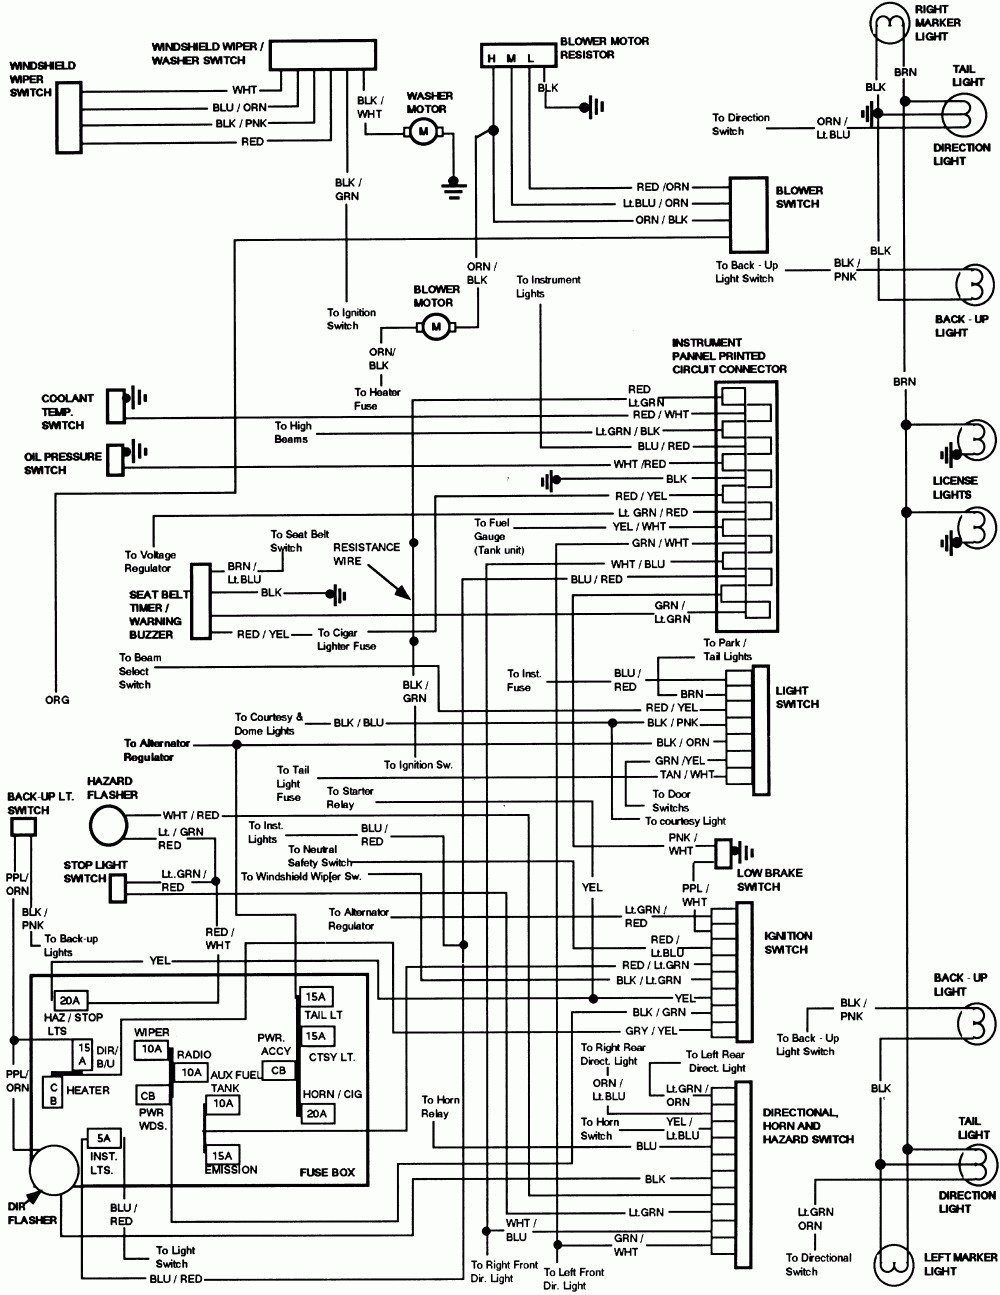 1999 ford f250 wiring diagram unique